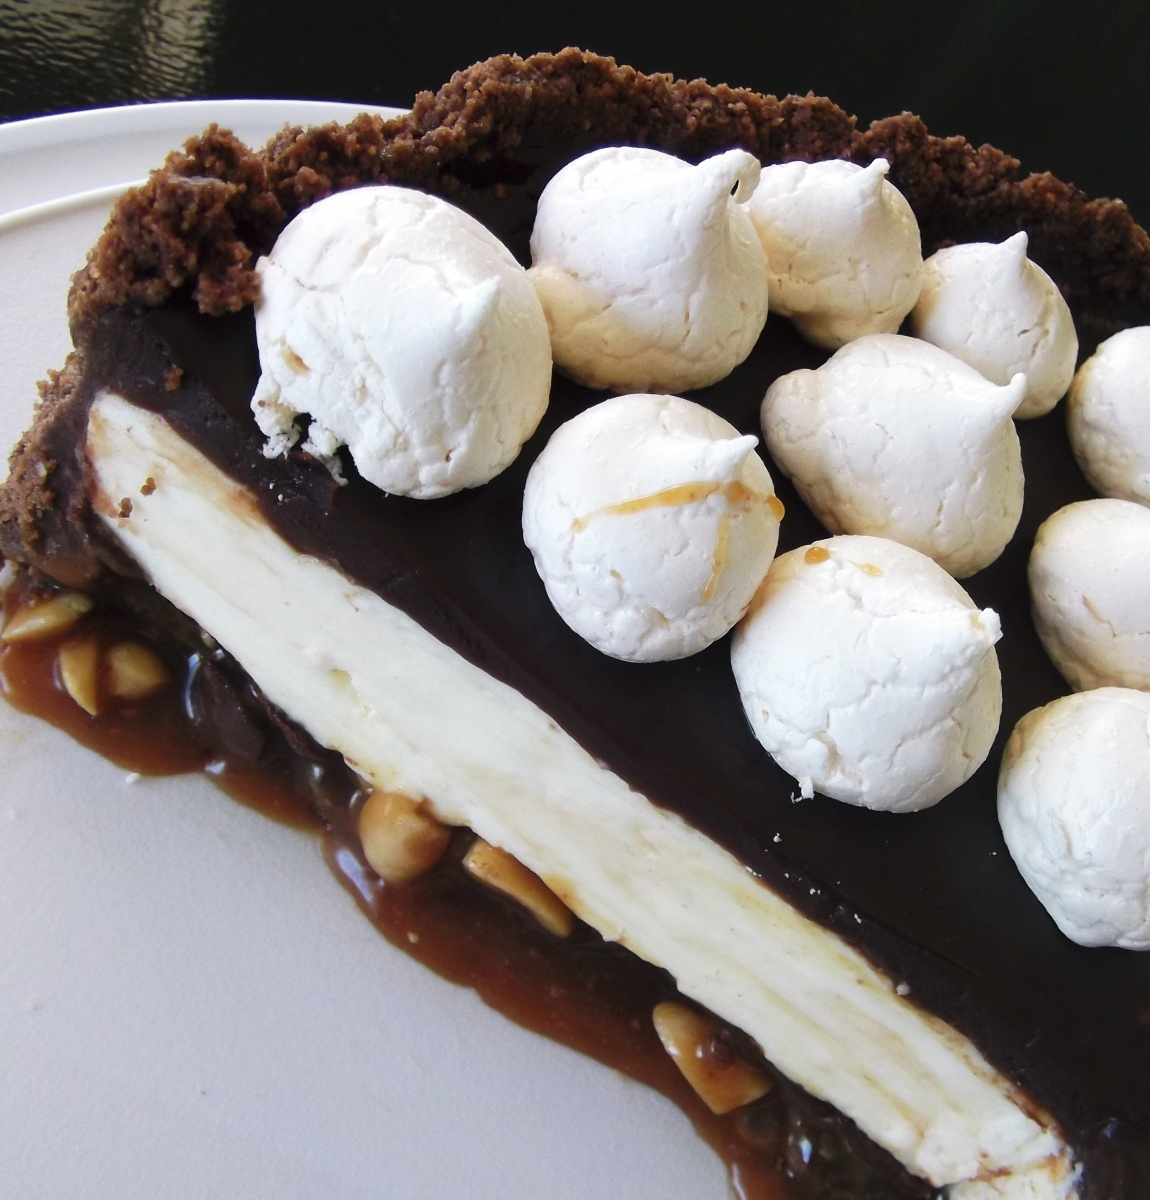 Chocolate Peanut Caramel Nougatine Dunmore Candy Kitchen: Ultimate Cheesecake: Triple Choc With Salted Peanut